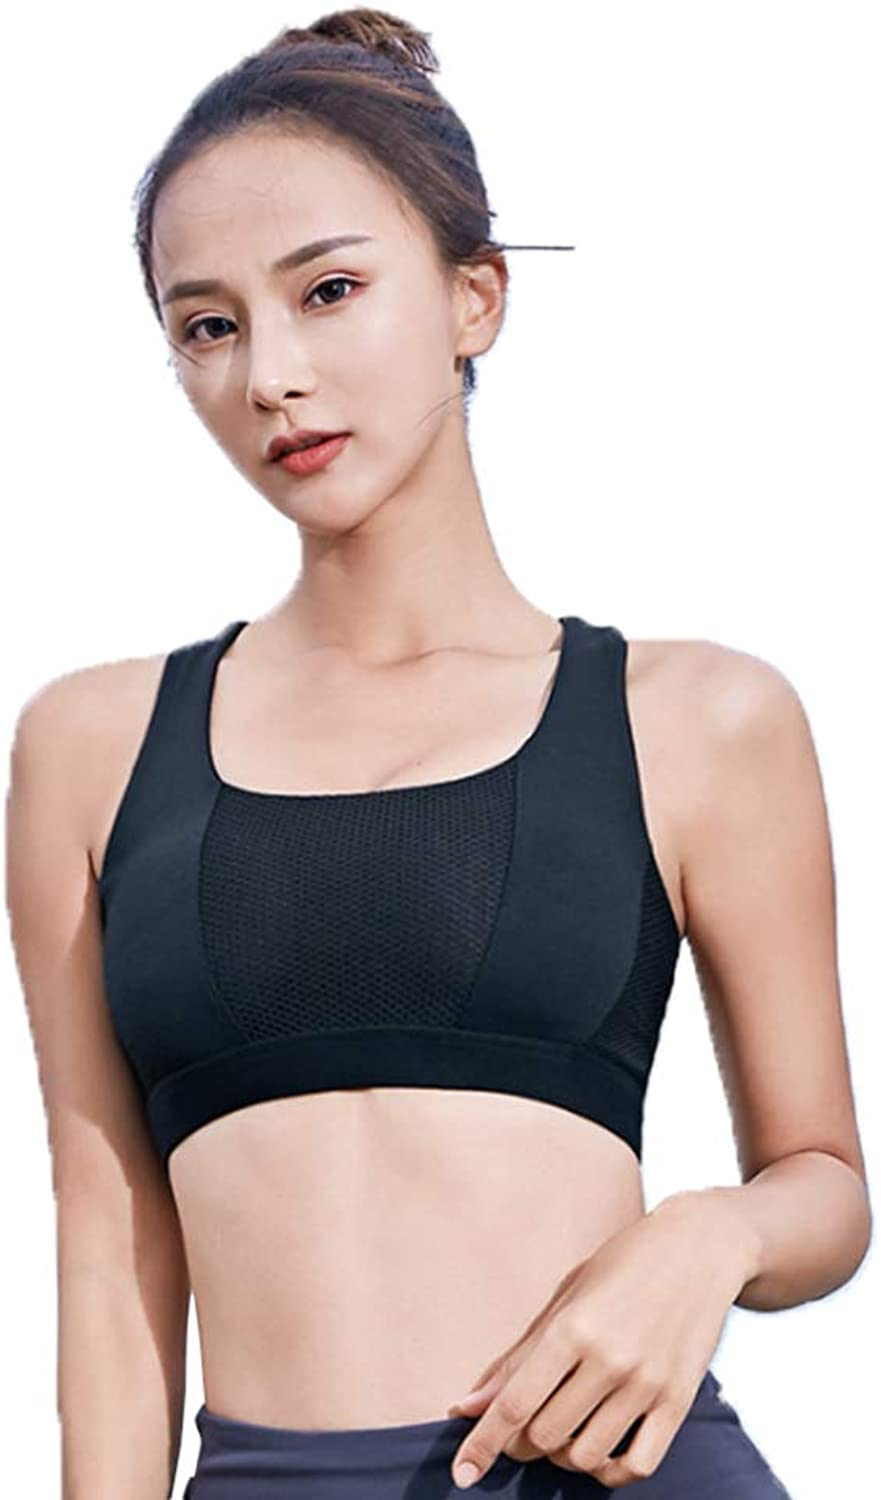 ZENWEN Women's Fitness Shockproof Yoga Bra Cross Belt Beauty Back Fitness Running Bra QuickDrying Yoga Wear